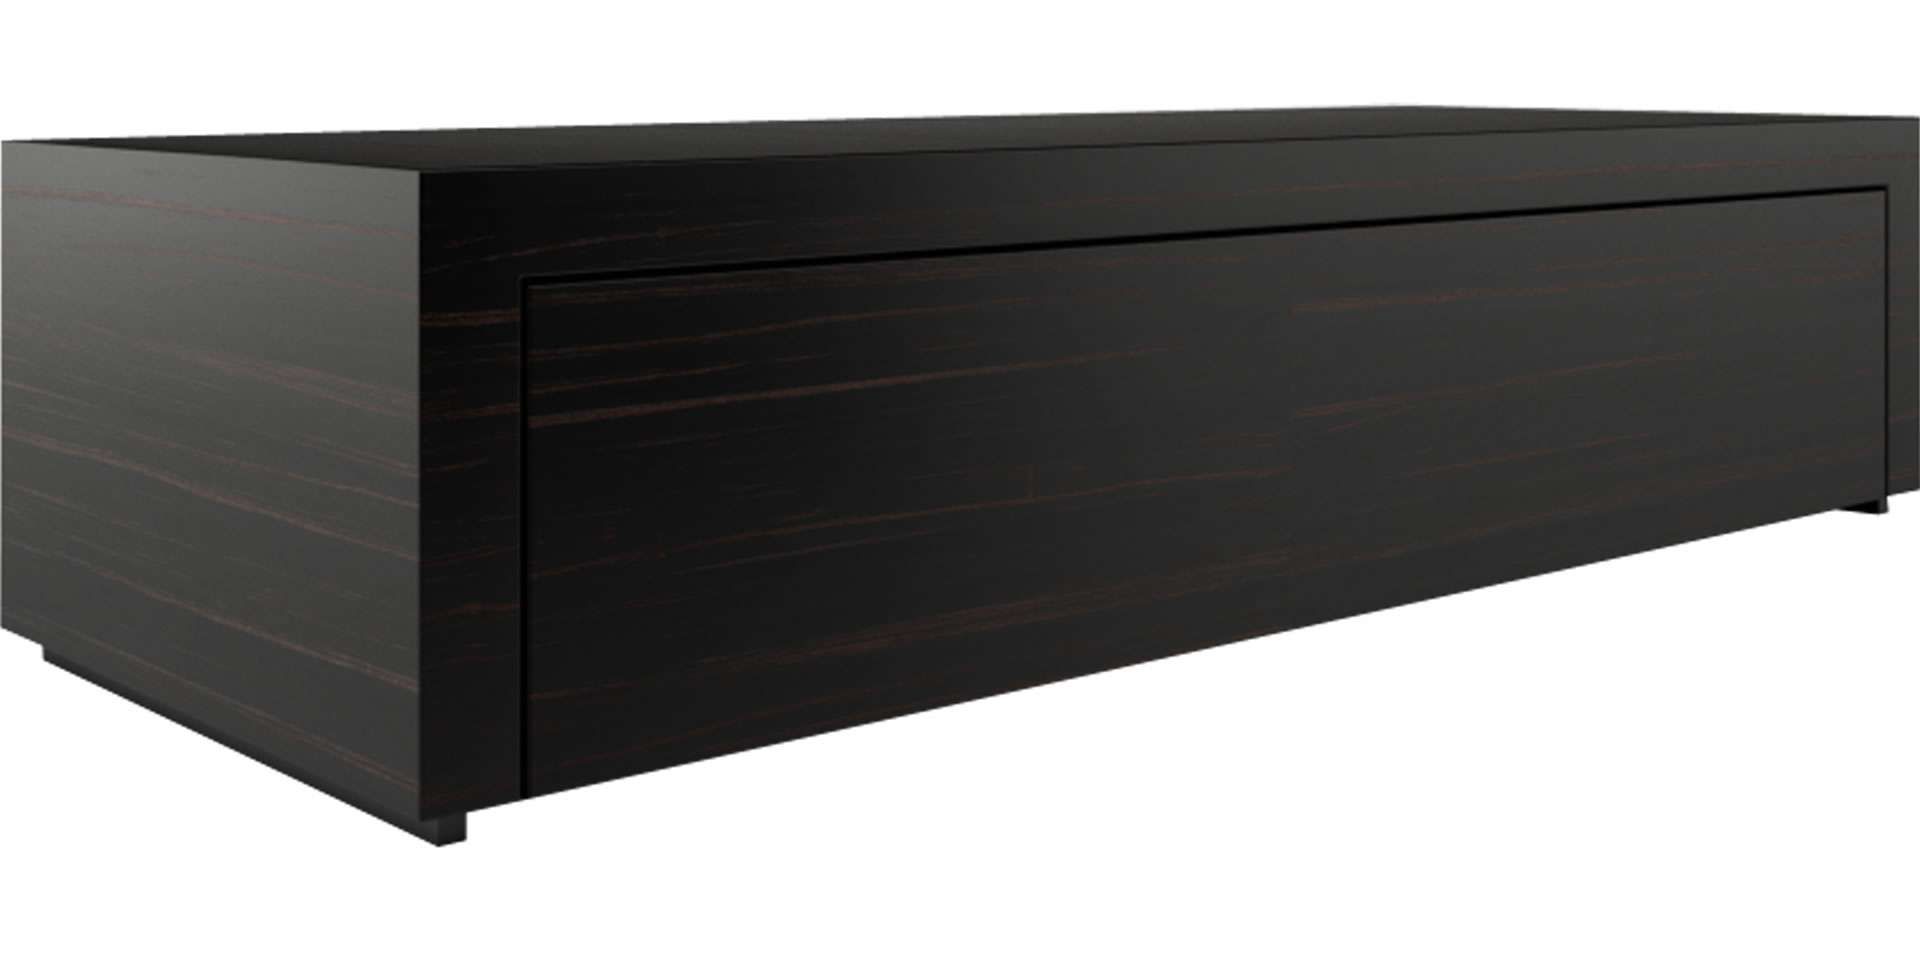 sideboard repositio puristisches design sideboard von rechteck. Black Bedroom Furniture Sets. Home Design Ideas